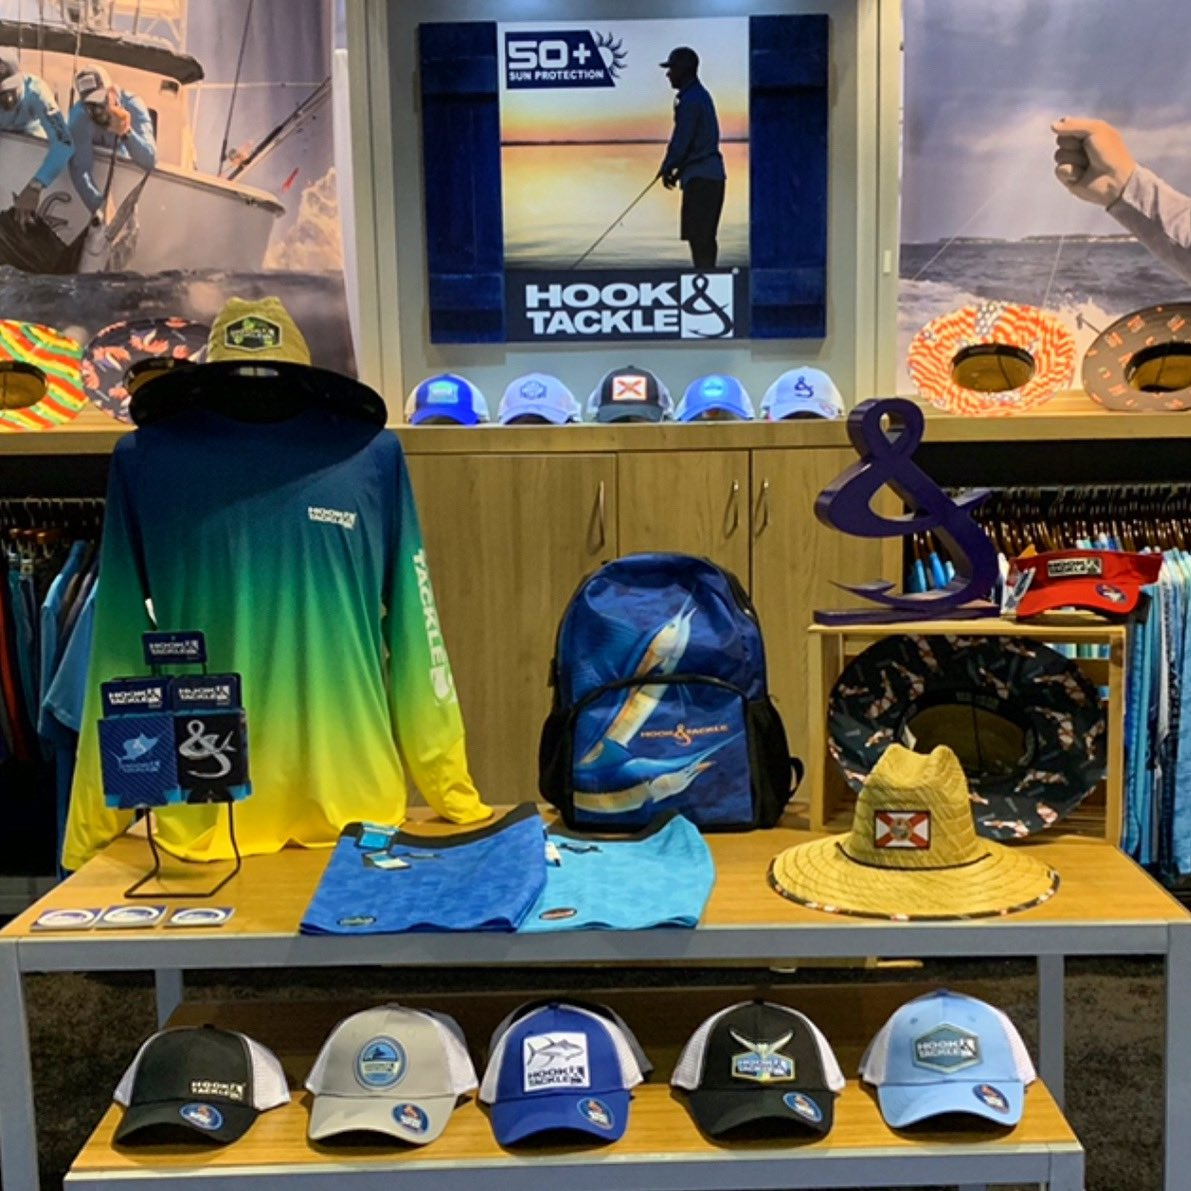 #hookandtackle at @ICASTshow #Virtual #fishingapparel #icast2020 https://t.co/uBS3wCqjwt